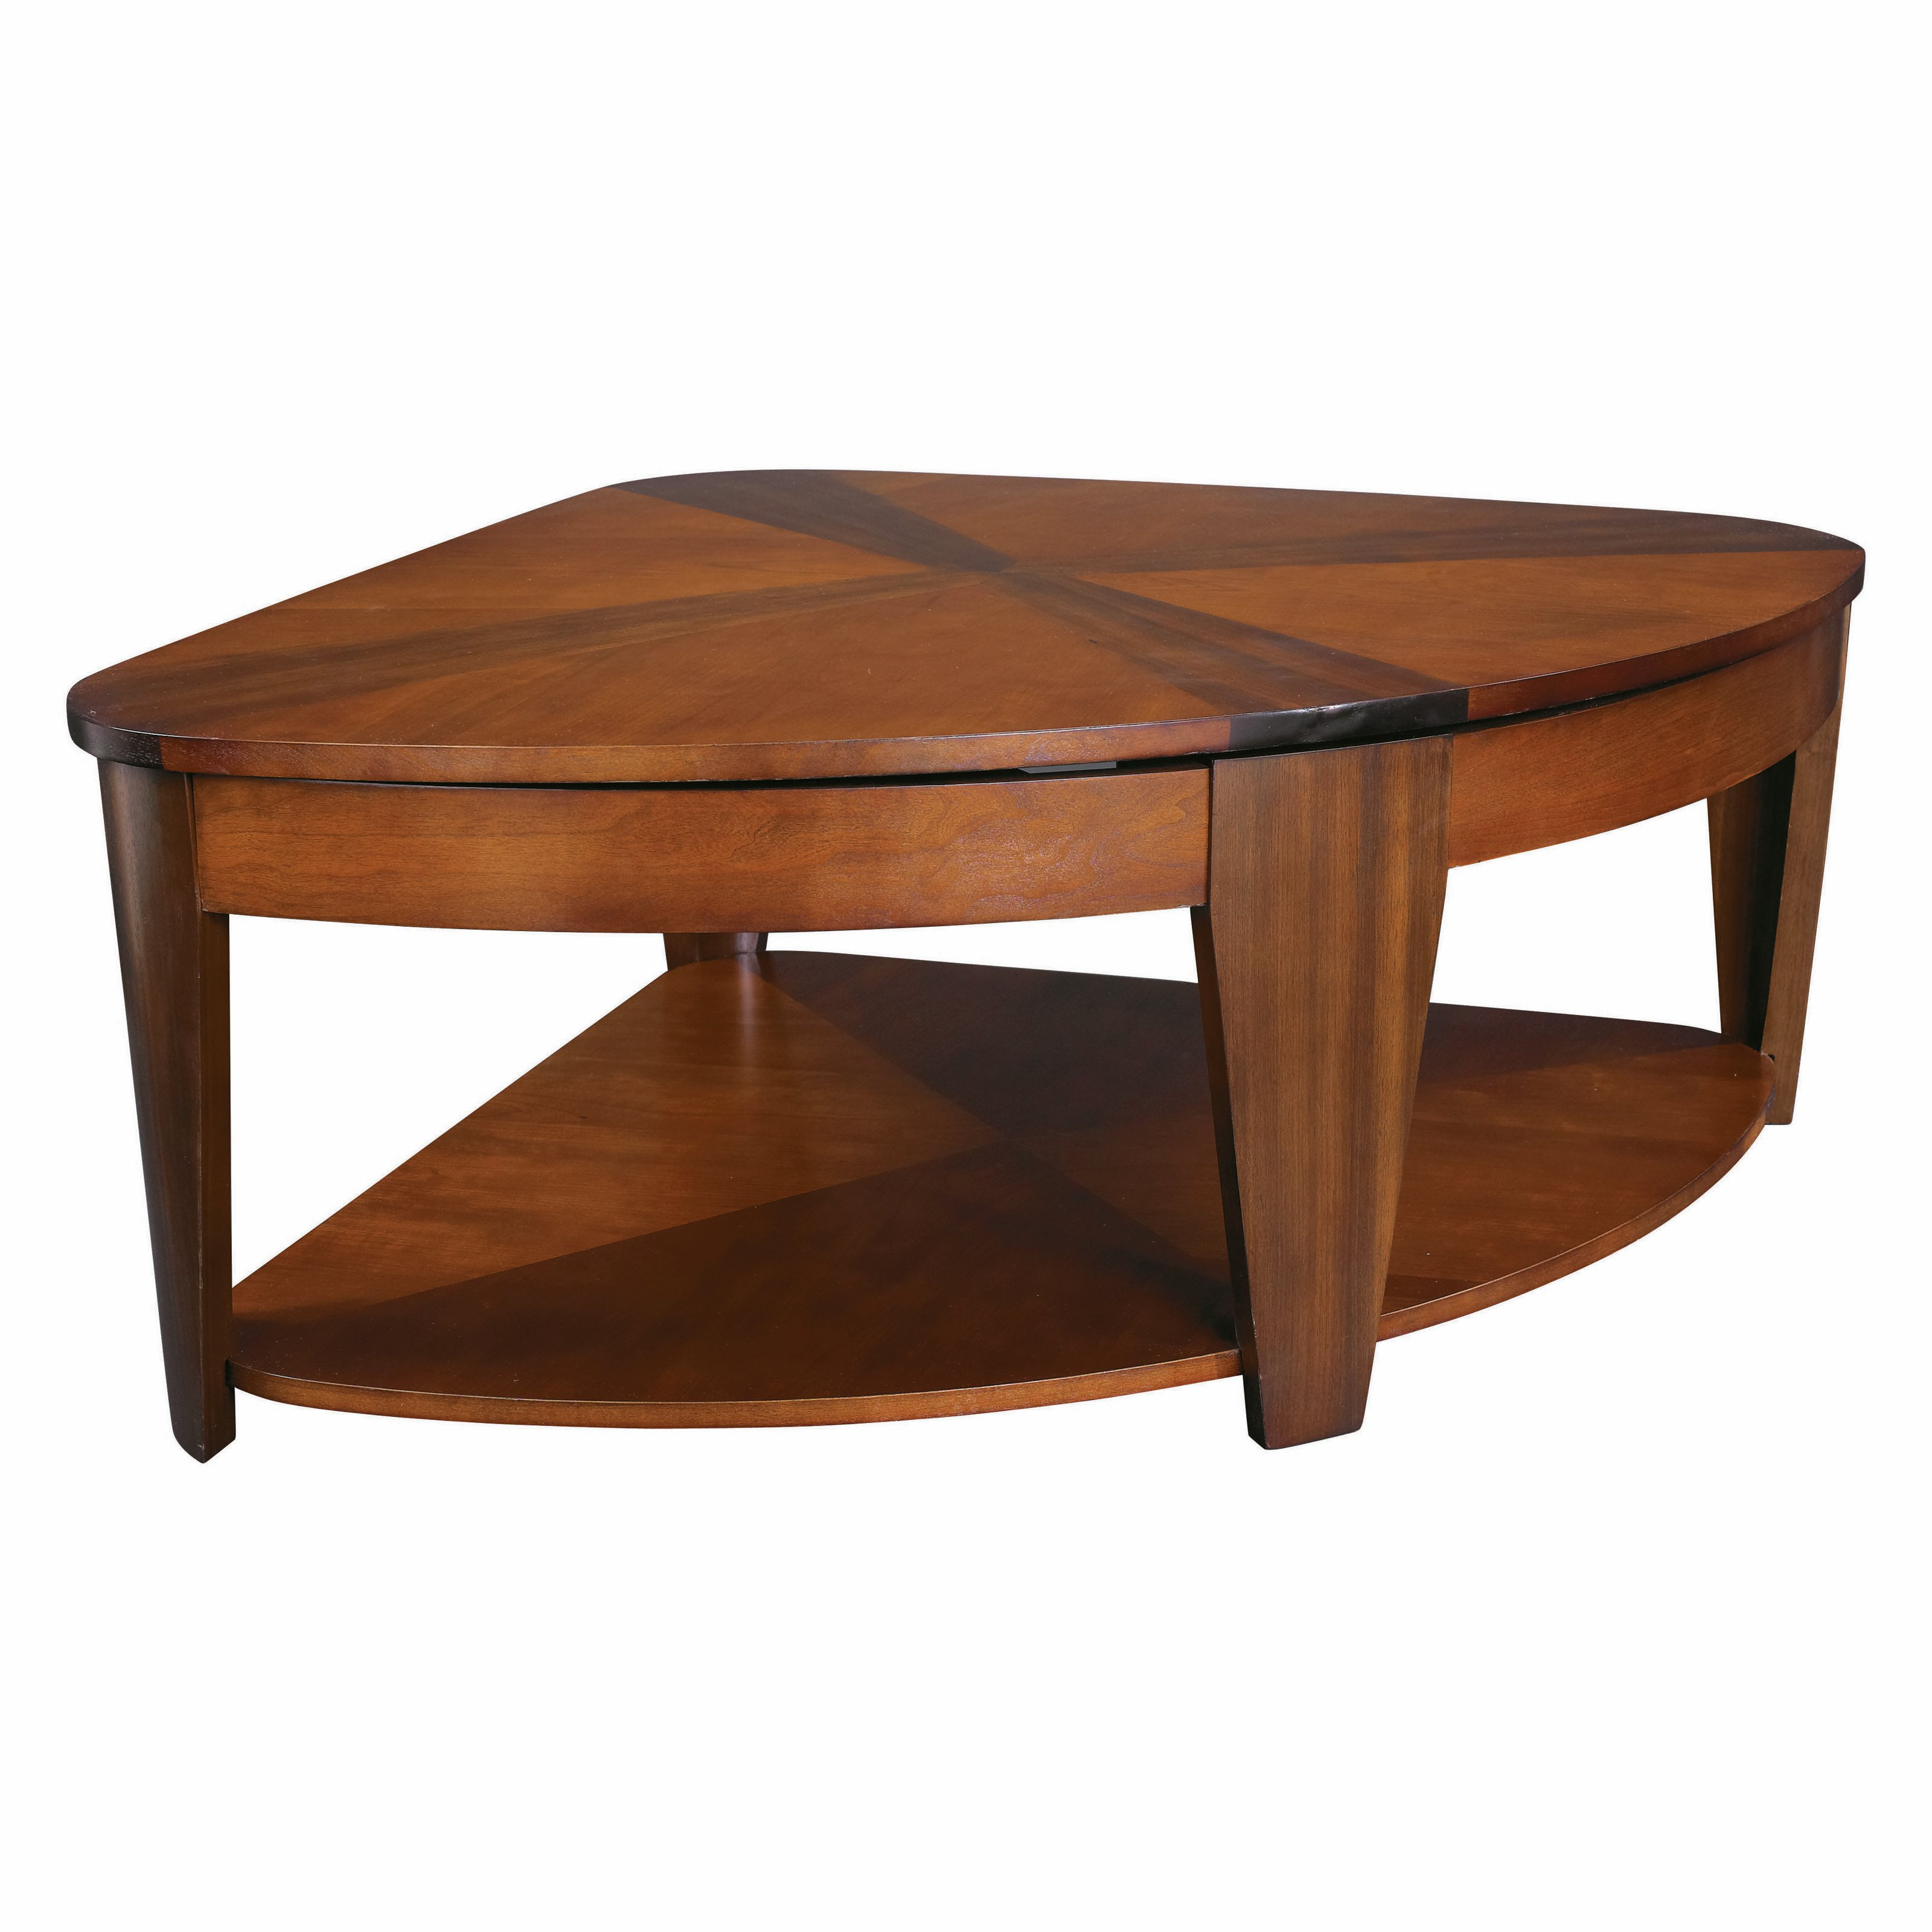 coffee accent tables edgy triangle shaped table for small navy modern living room furniture sets nic umbrellas bamboo patio rose gold lamp gray wash end red target round black